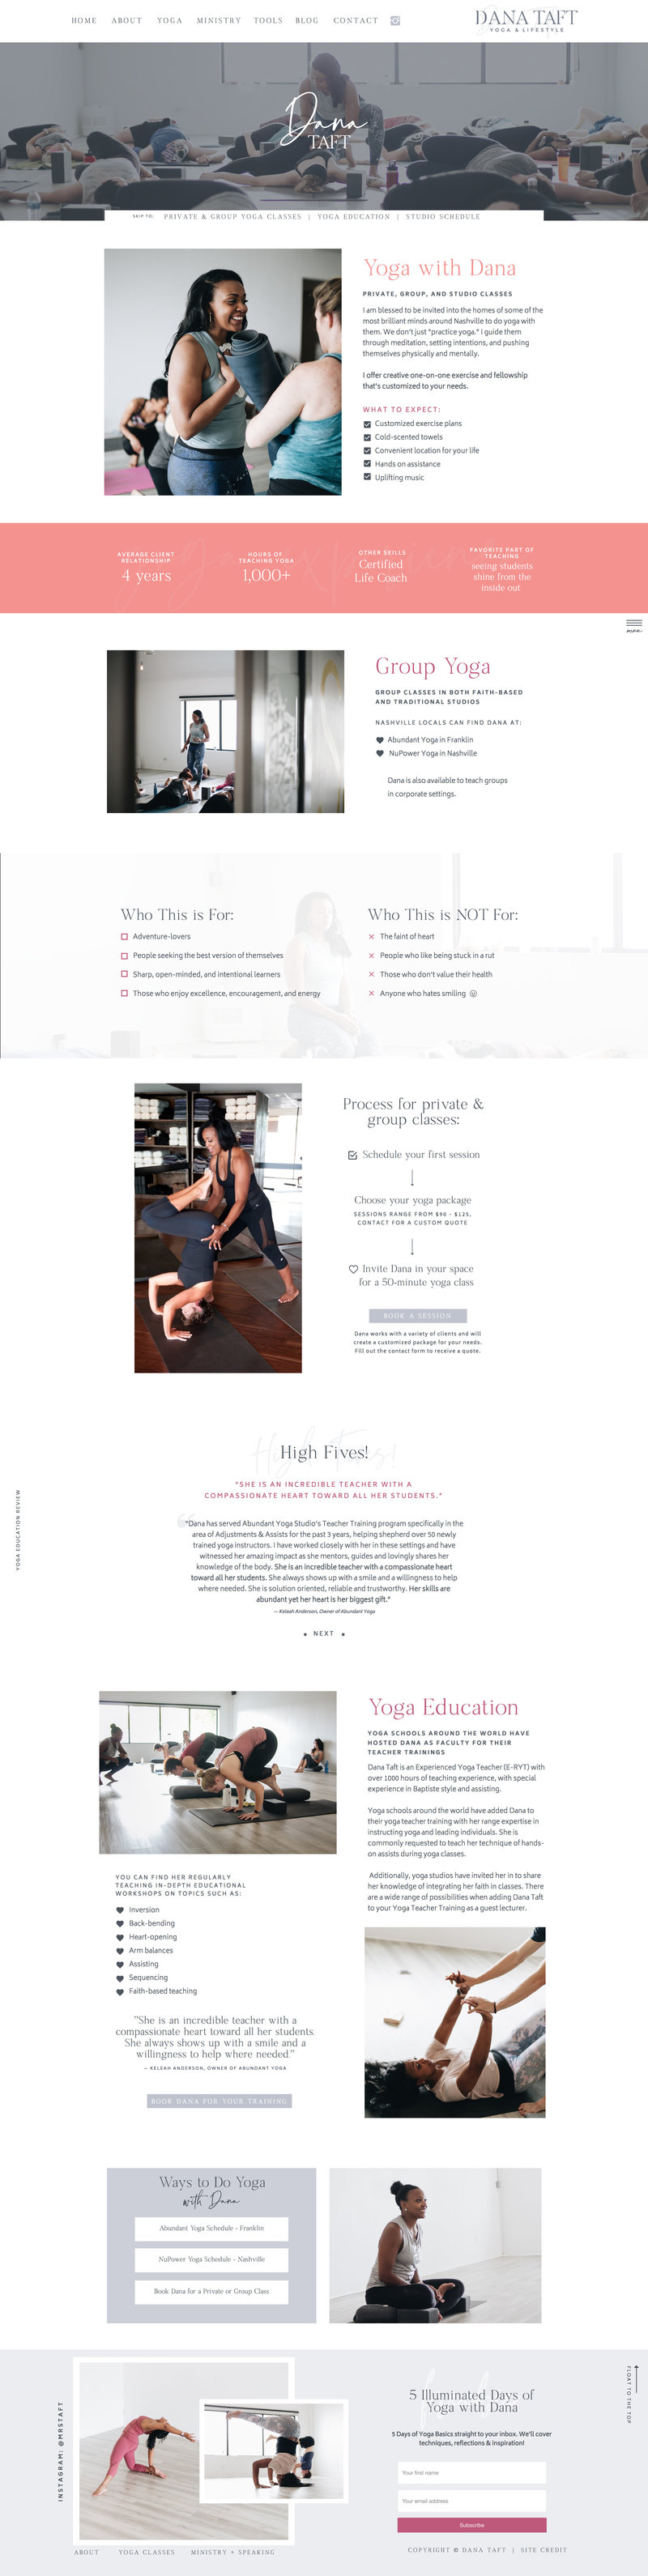 Dana Taft - Branding and Website Design by Elizabeth McCravy - Yoga Teacher Branding2